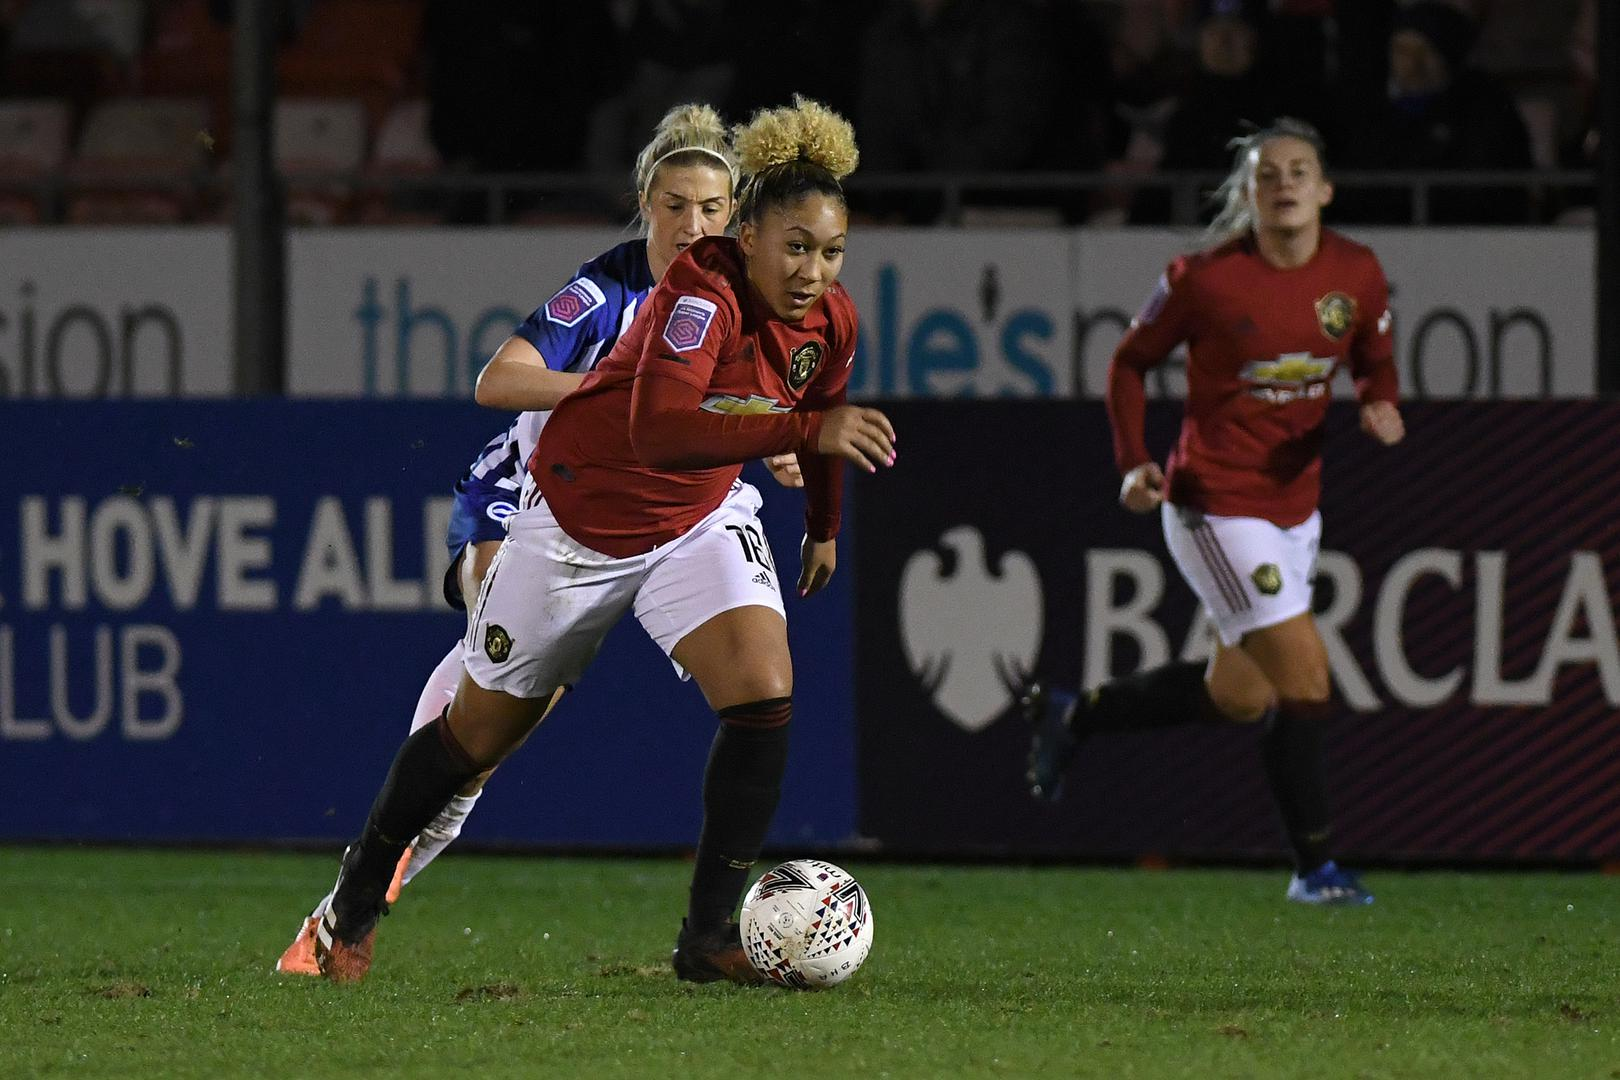 Lauren James on the ball for Manchester United in the Women's Super League against Brighton & Hove Albion